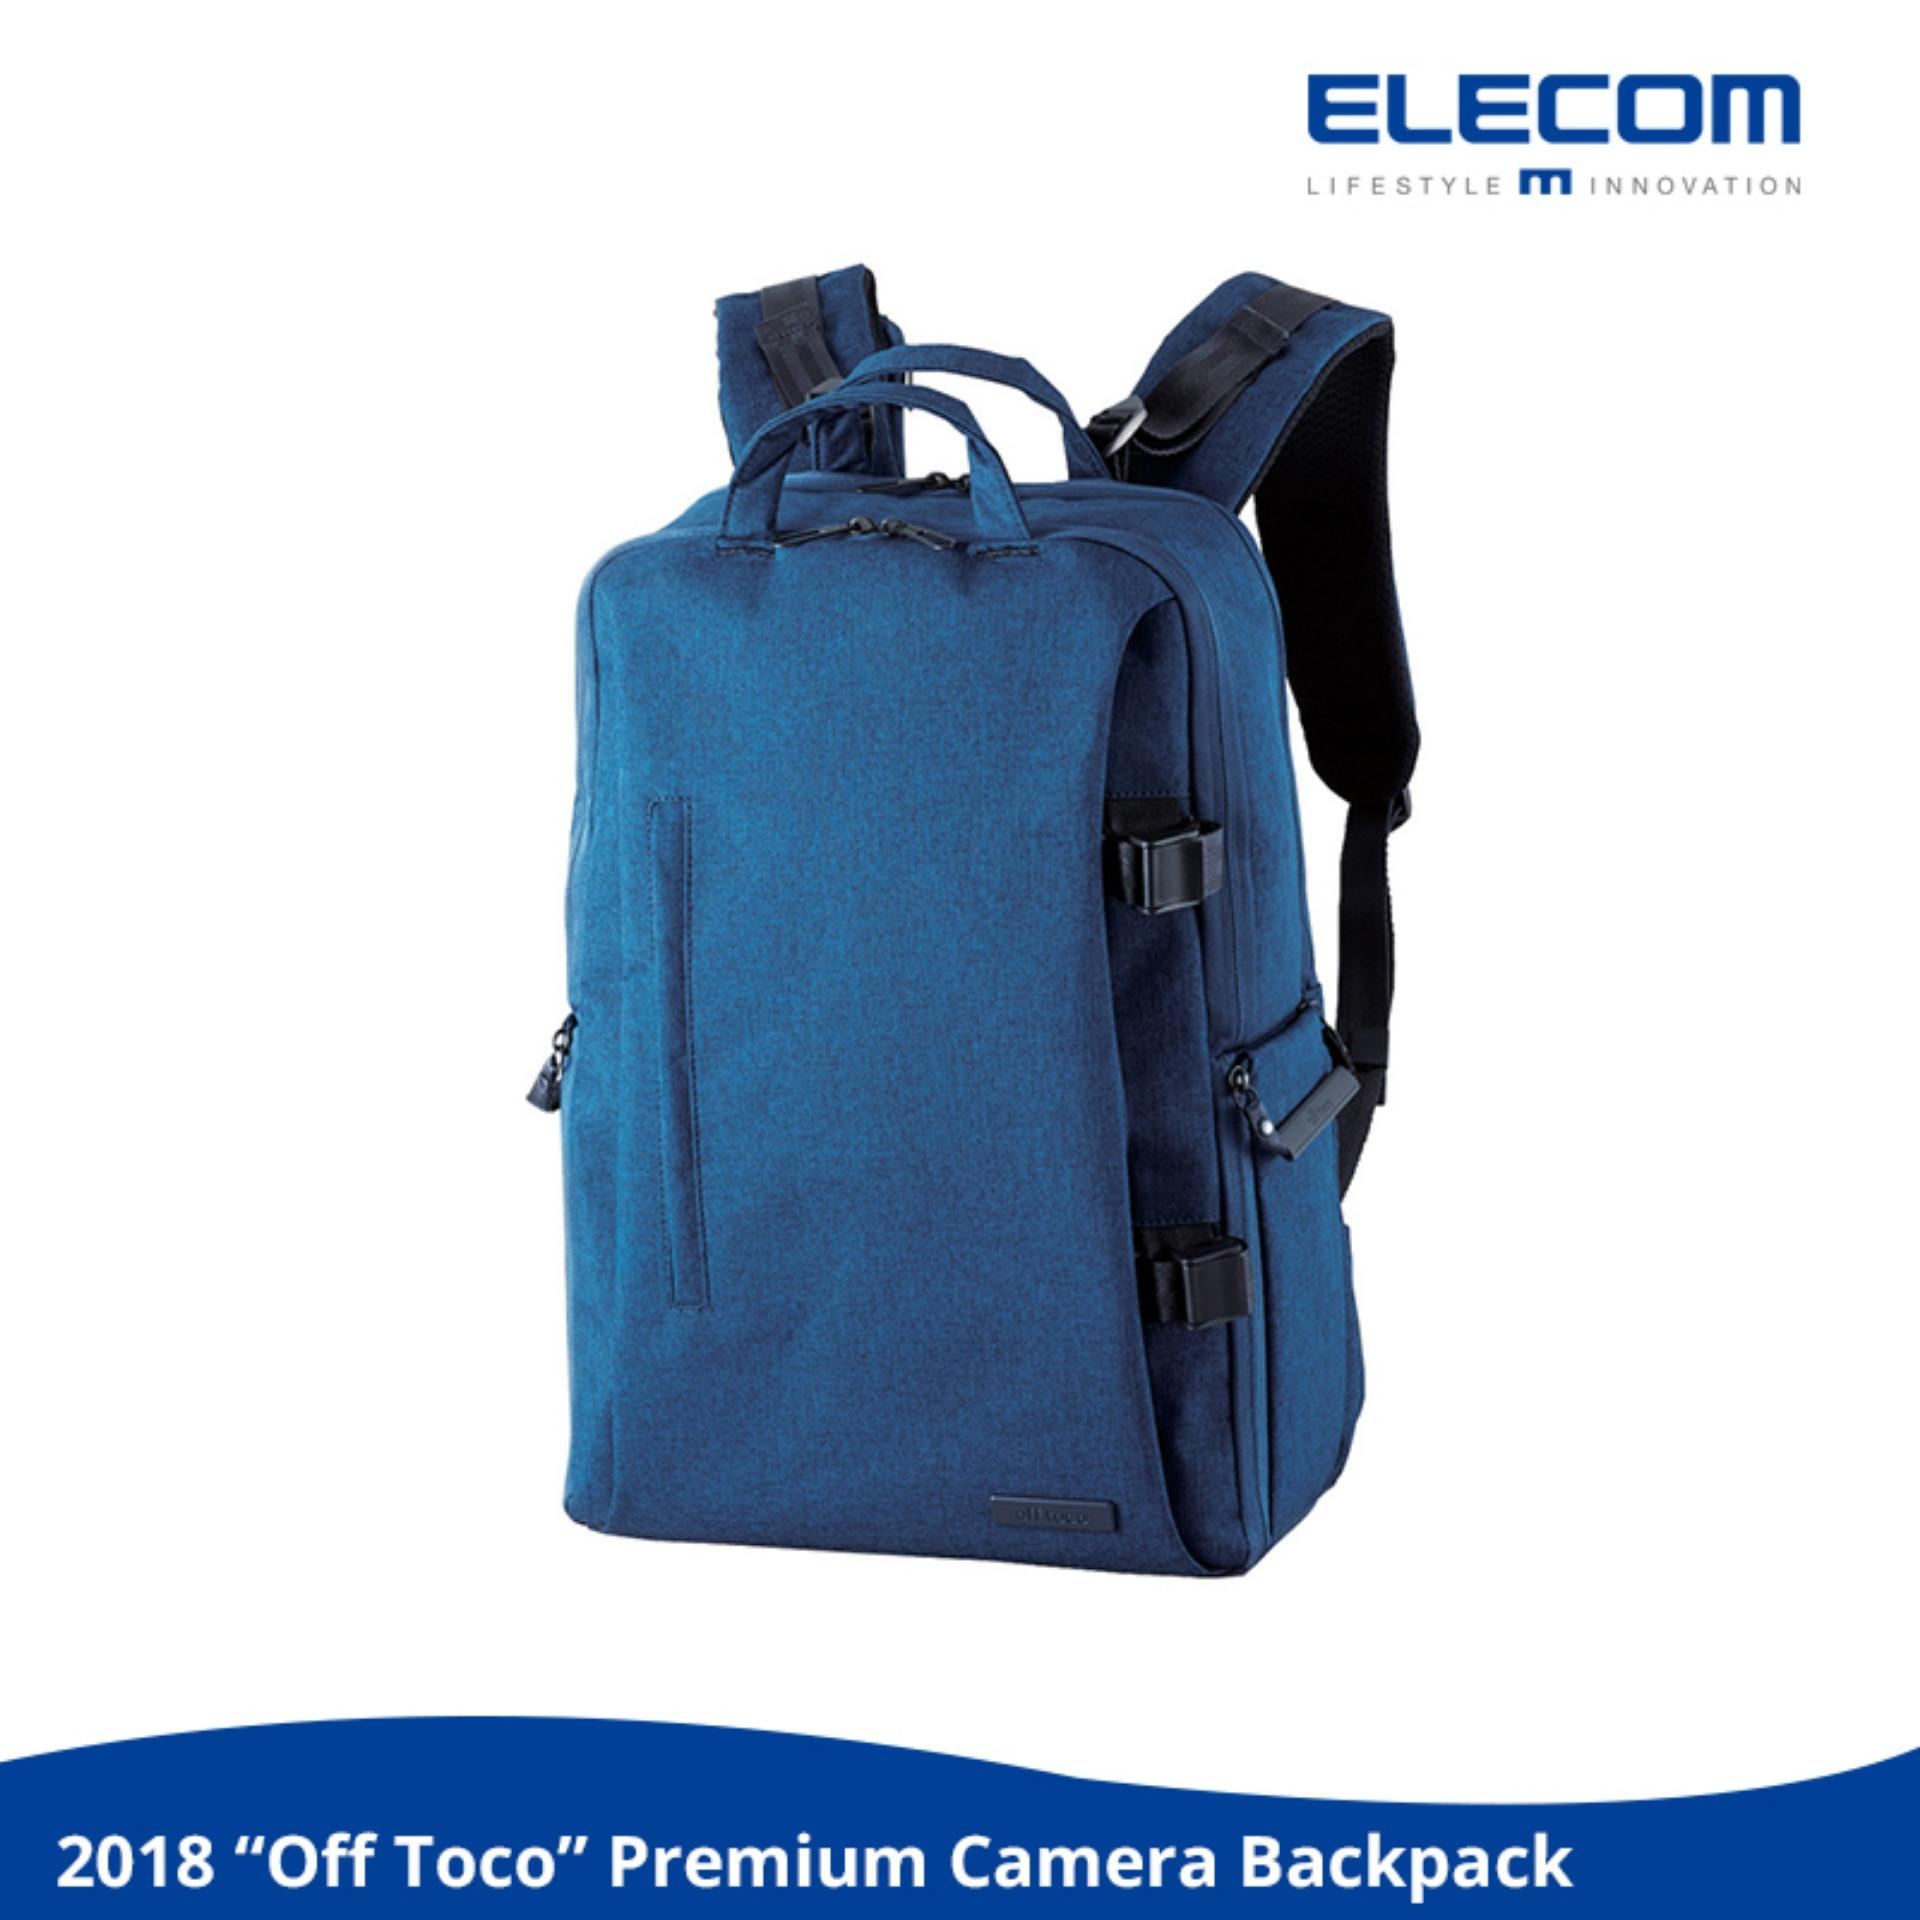 Buy Camera Cases Covers Bags Lazada Lowepro Dslr Video Pack 250aw Elecom Off Toco Premium Backpack L Size 2018 New Model